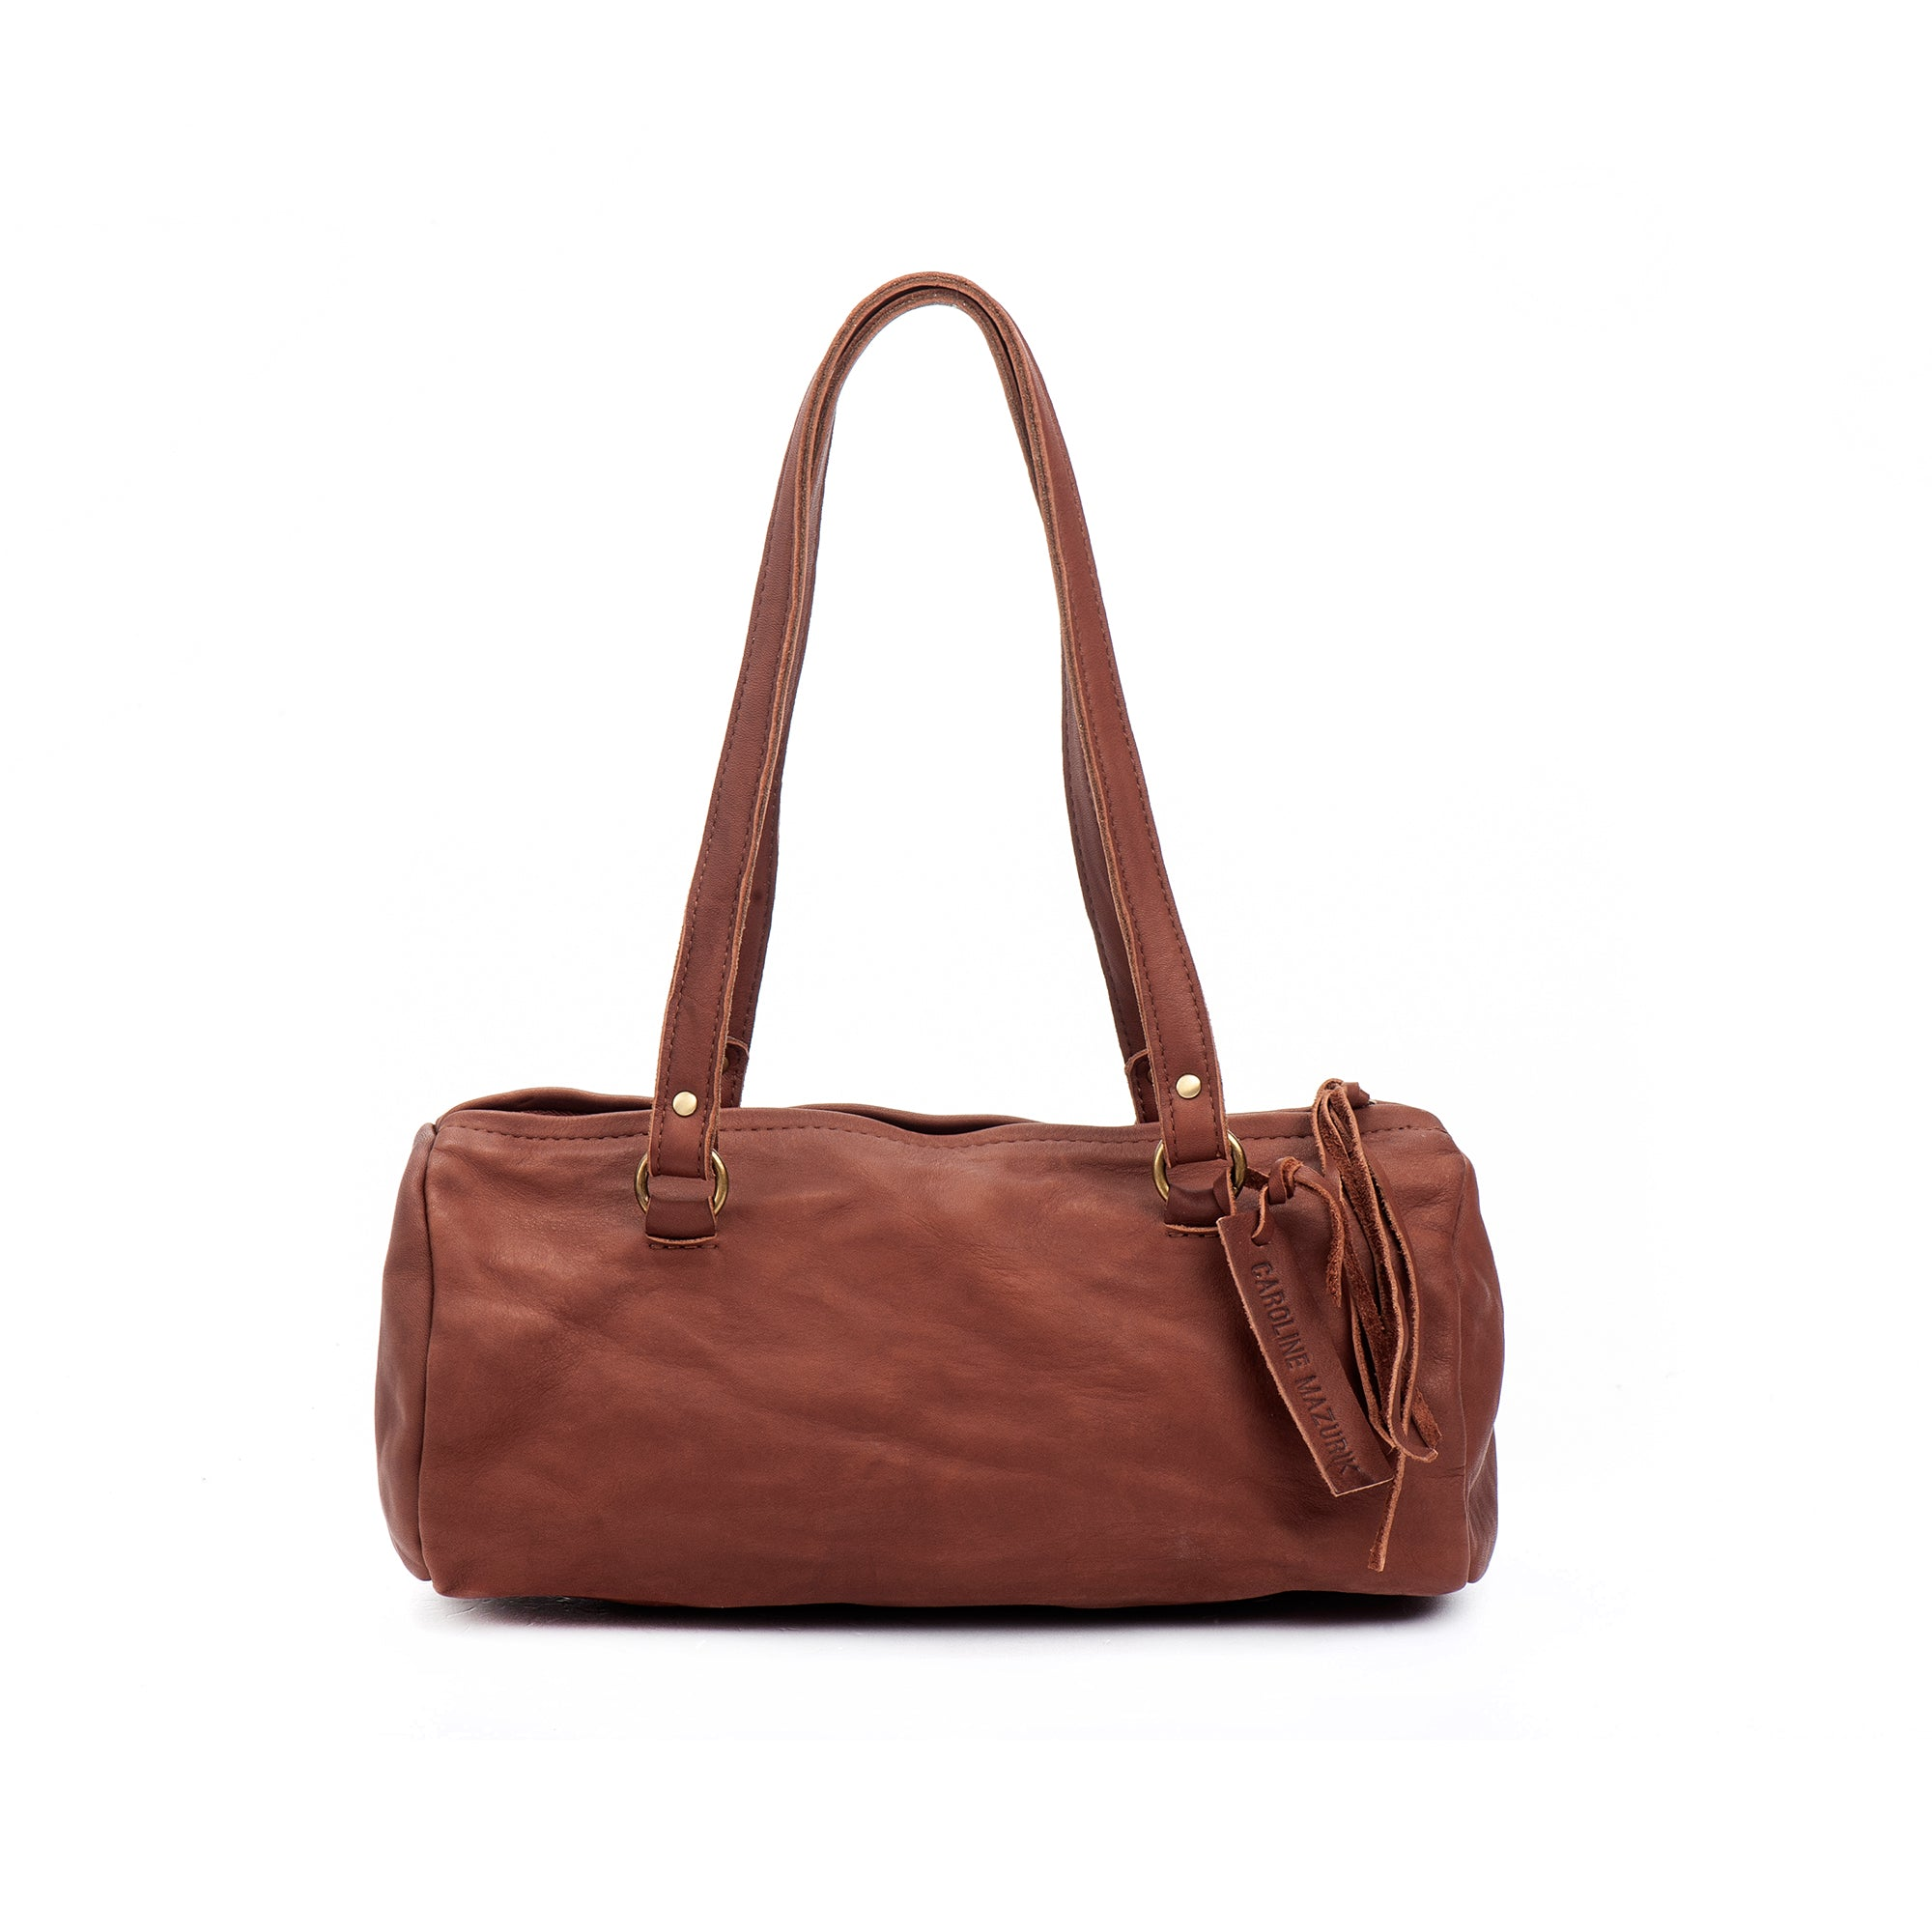 Brick Brown Leather Shoulder Handbag medium perfect size Italian leather woman bag